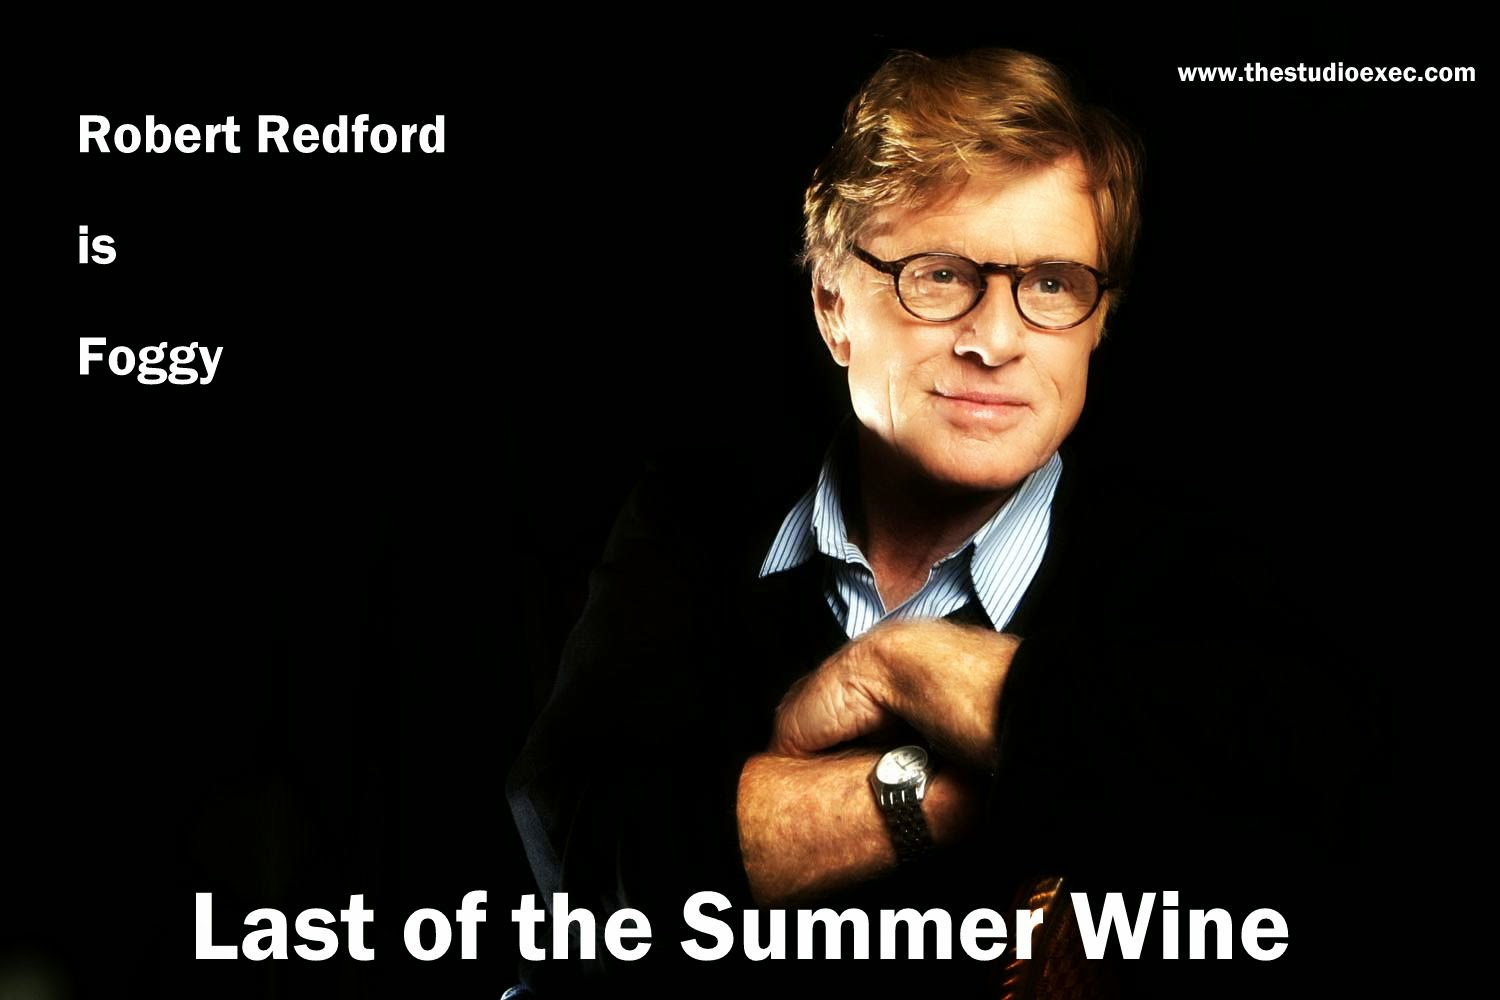 LAST OF THE SUMMER WINE: FIRST LOOK